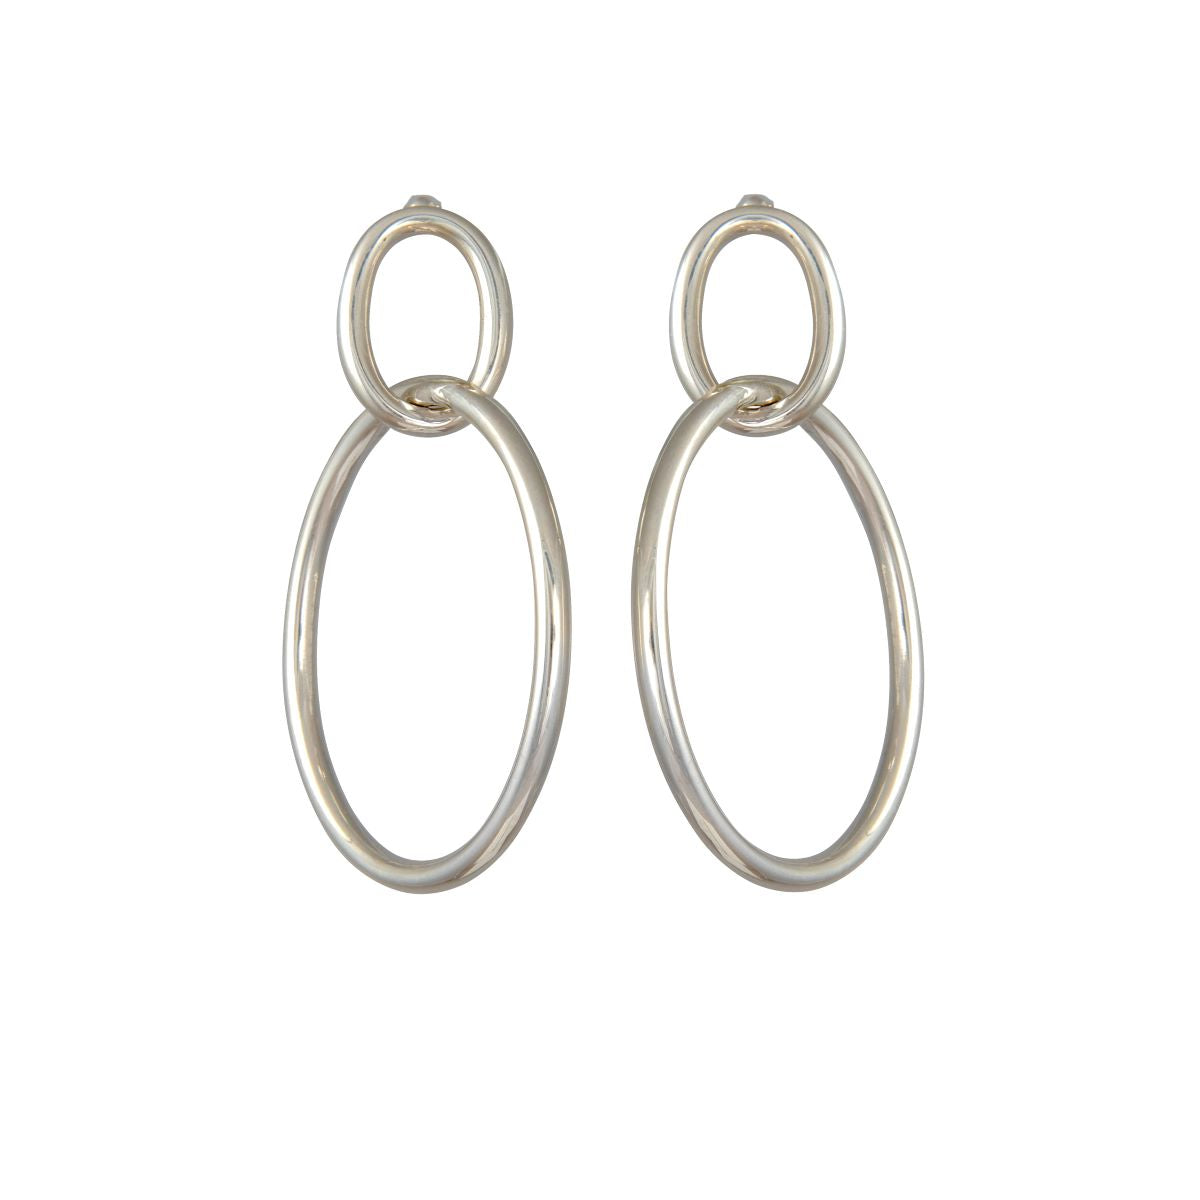 Two Interlinked Sterling Silver Hoop Earrings